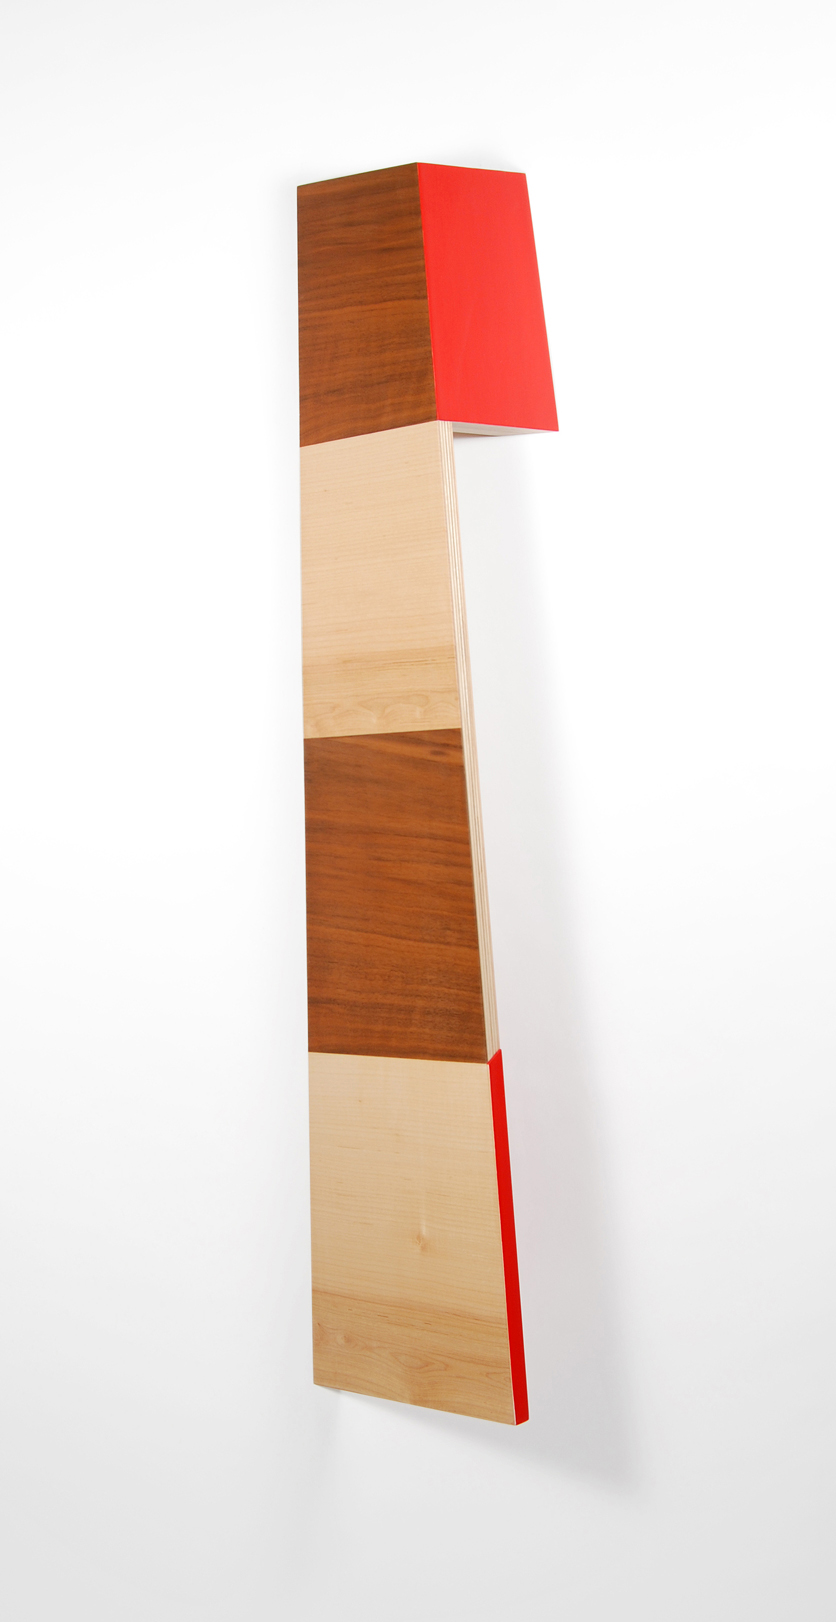 Richard Bottwin   Right Angle.1   2018  Maple veneer, walnut veneer and acrylic paint on birch plywood  34 x 9 x 6 inches